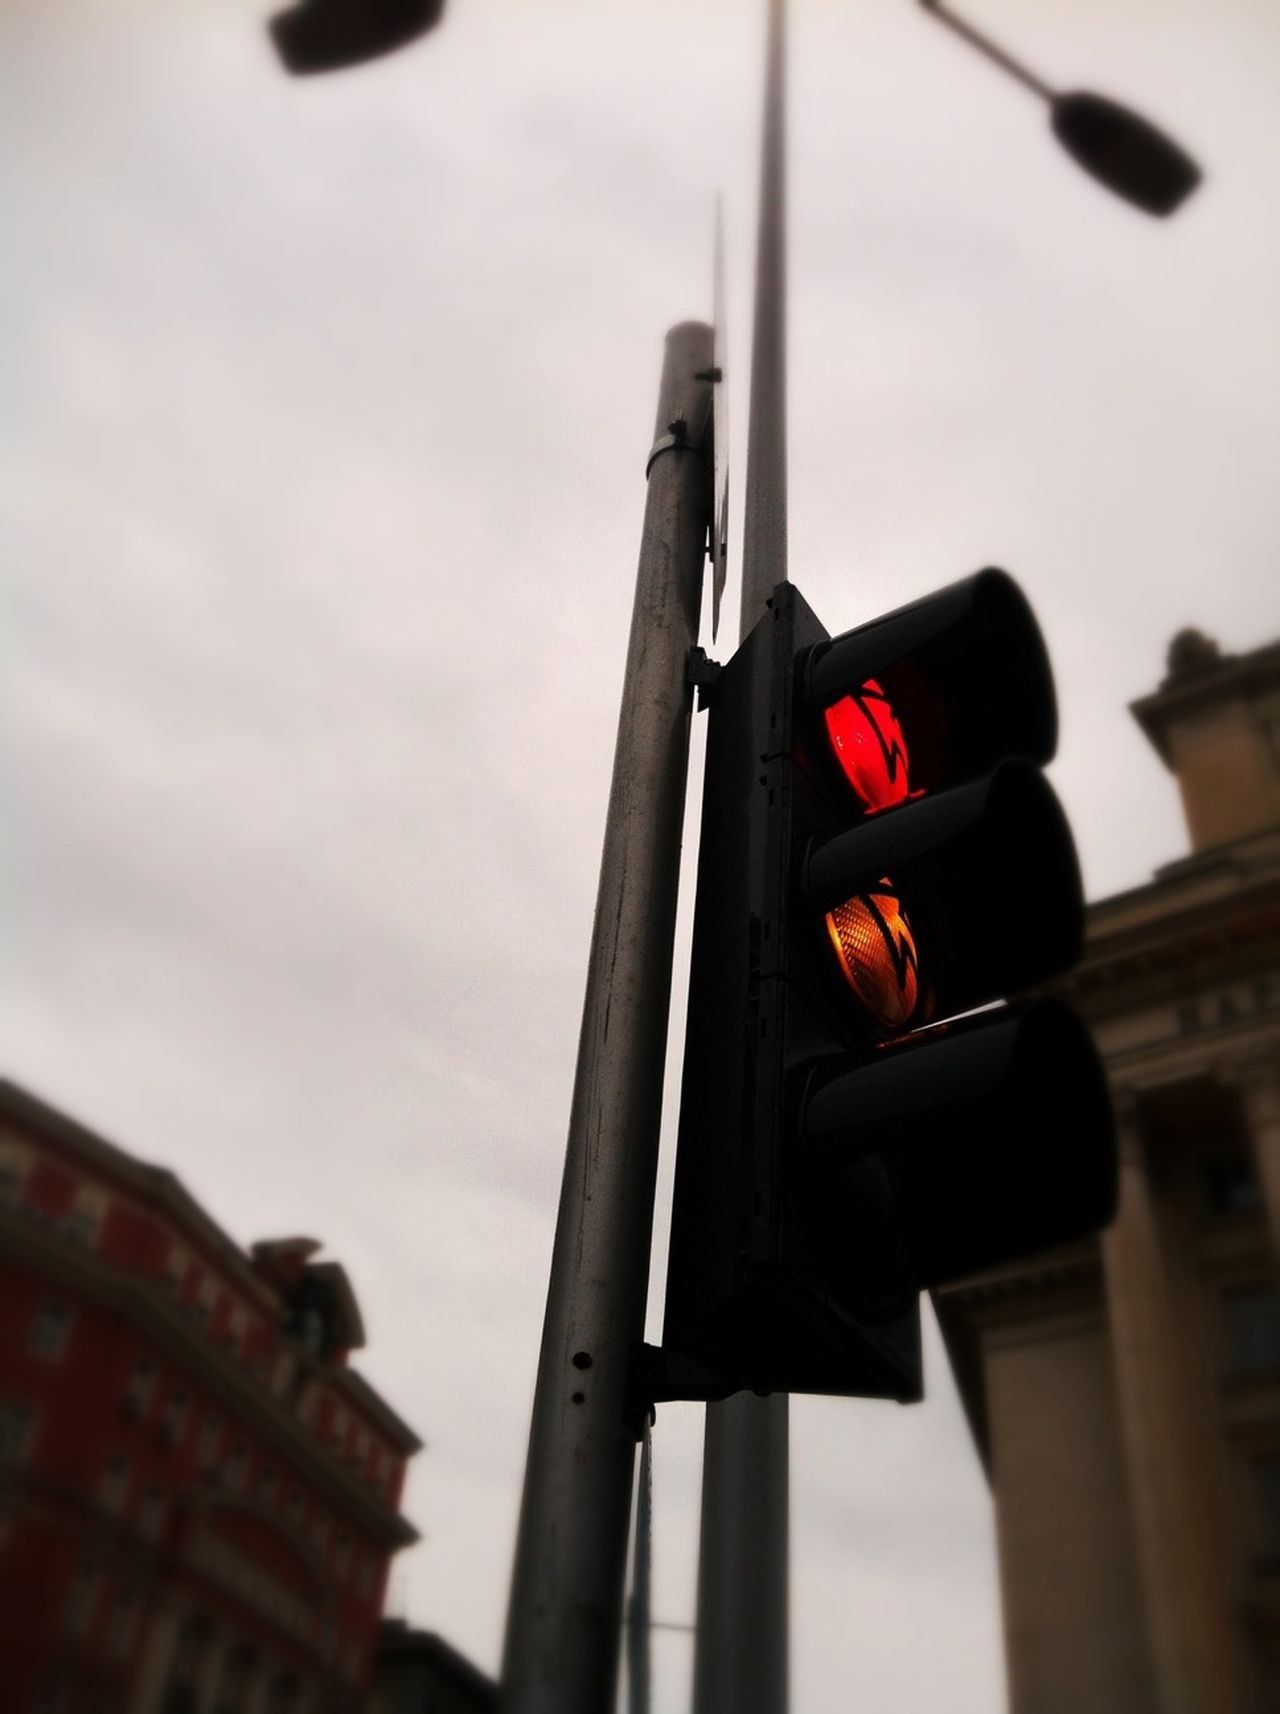 Low angle view of traffic light against sky